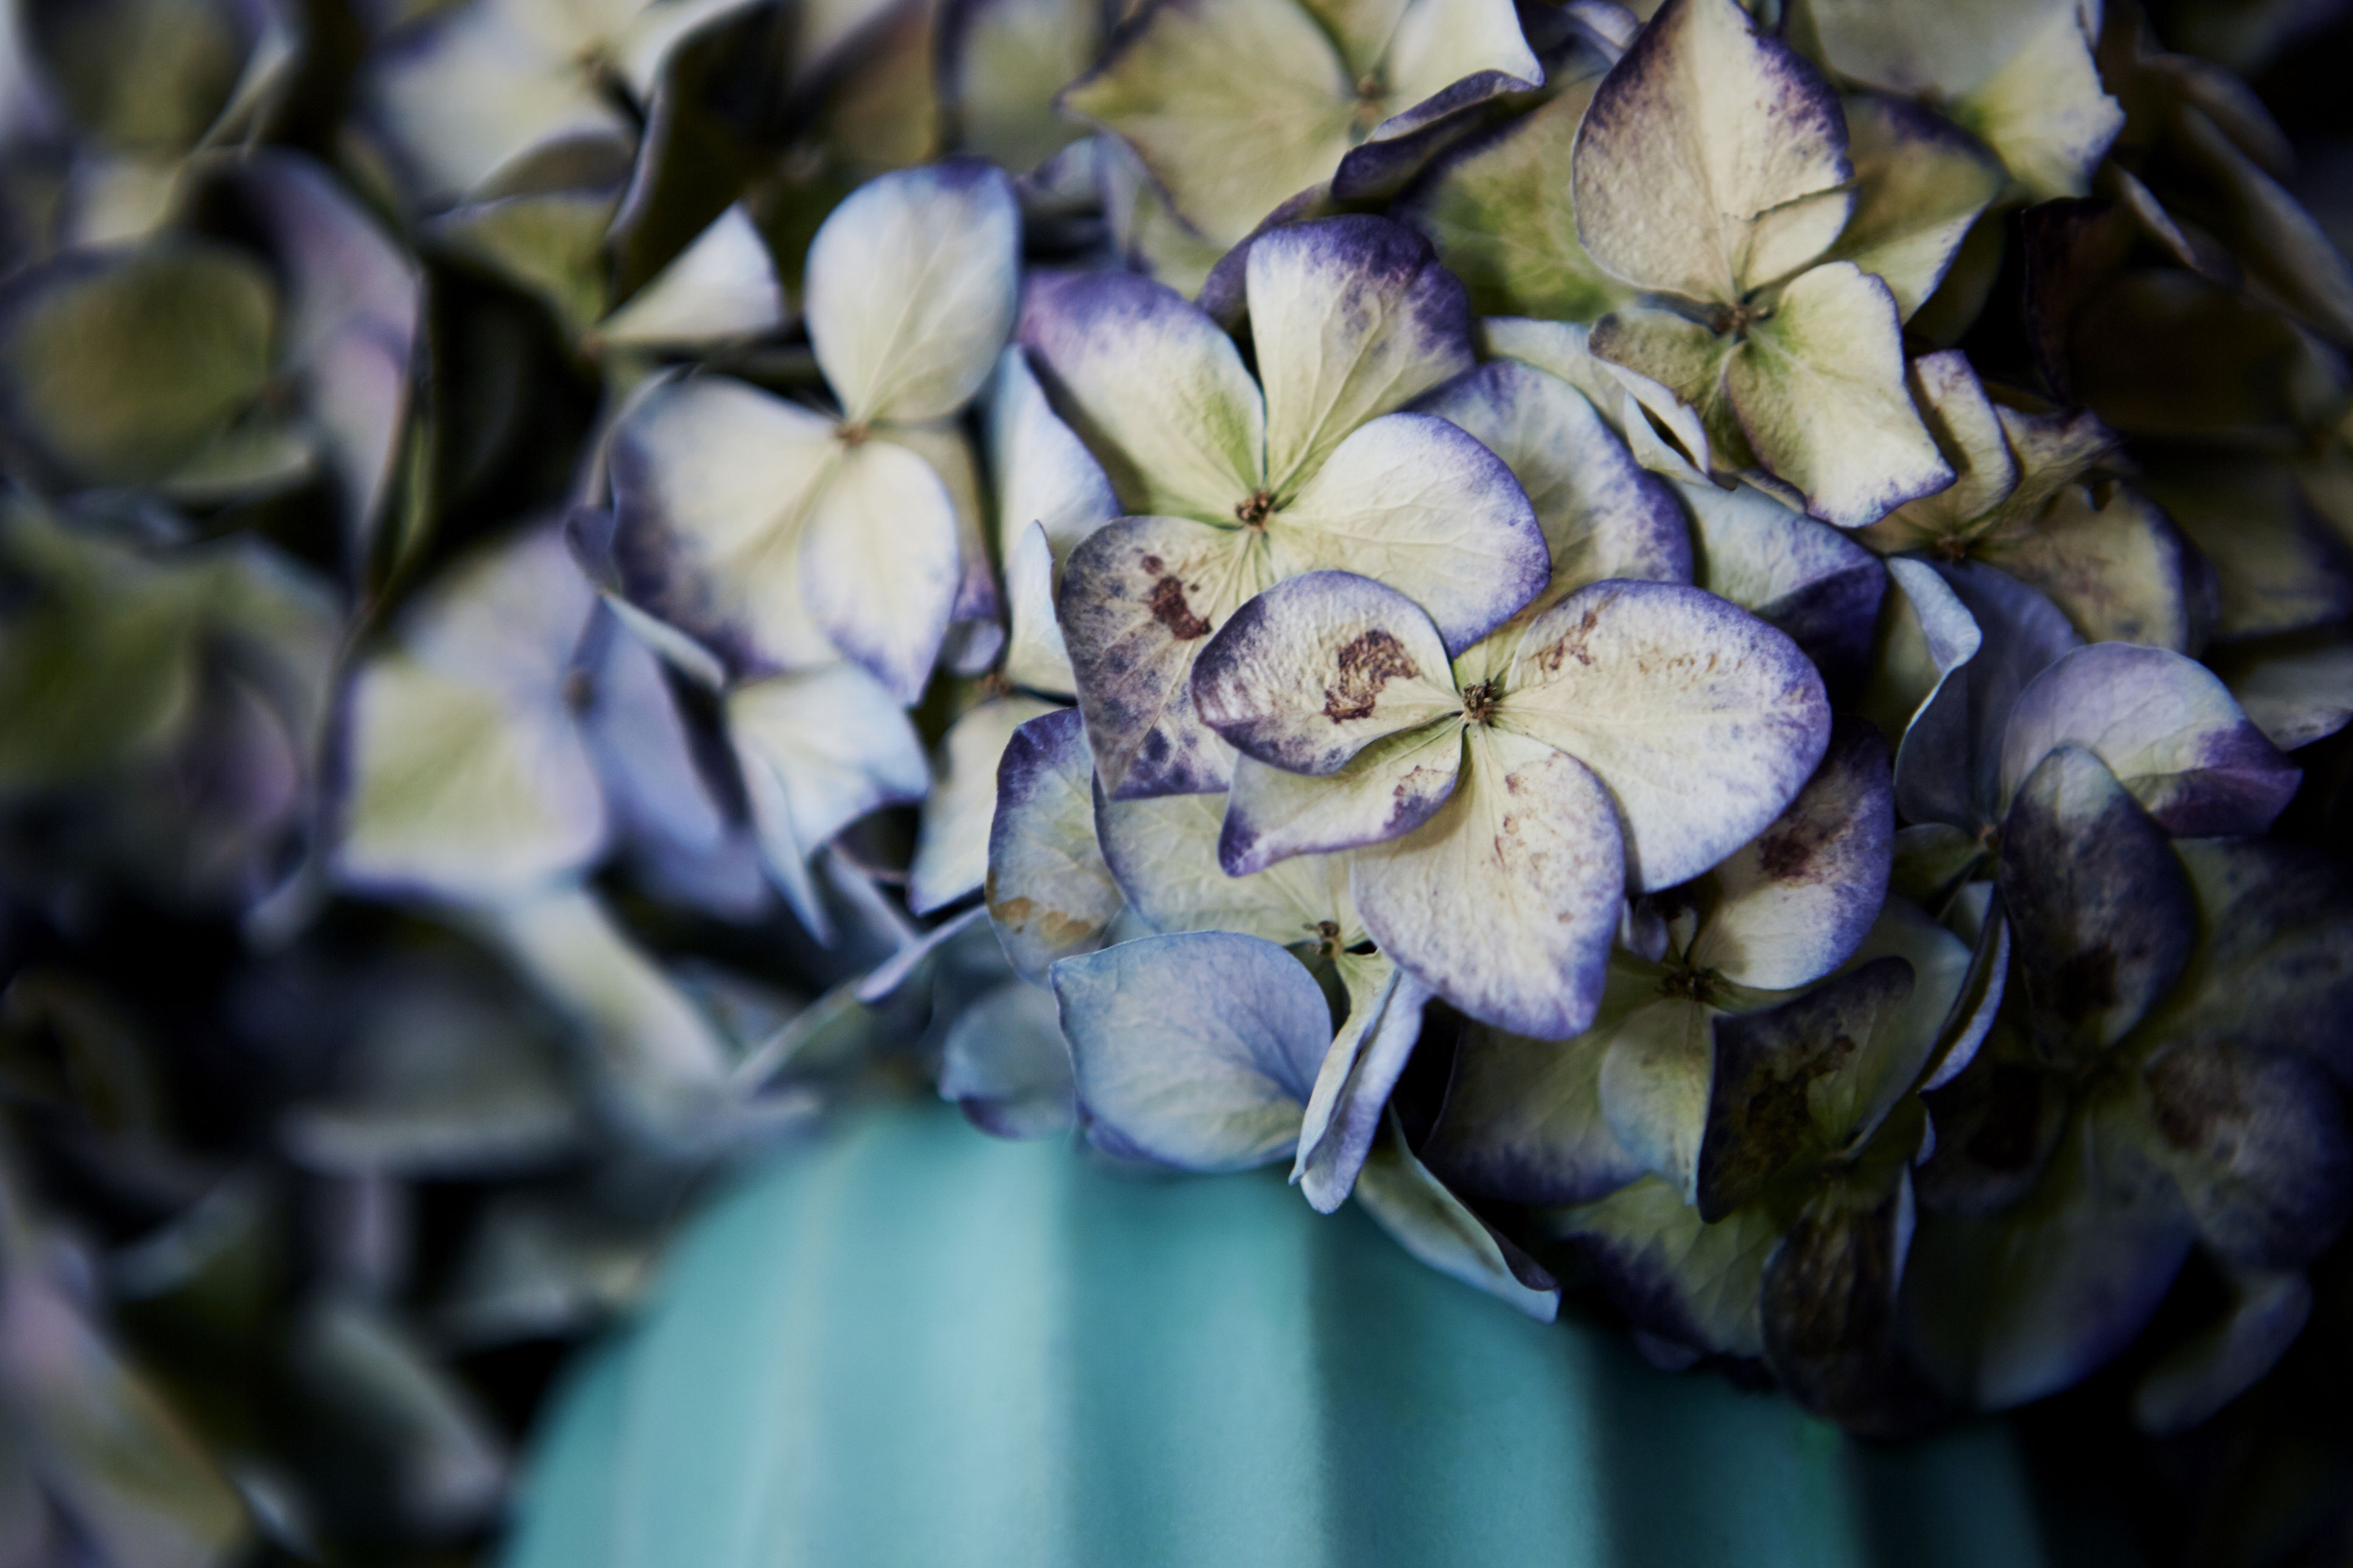 antique auto bud vases of how to dry and preserve hydrangea flowers for dried hortensia in vase close up 495801659 5b16c97e8e1b6e00369b13ec